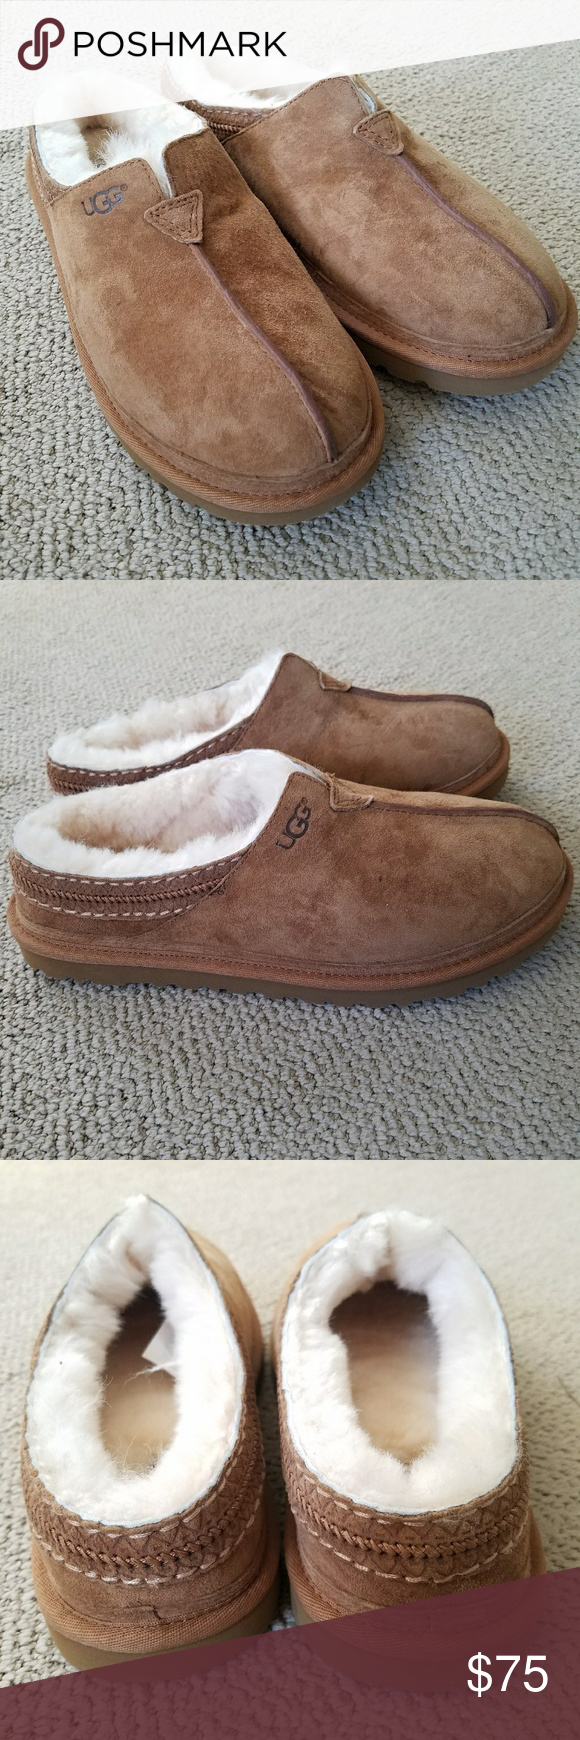 6542ed22b71 Neuman UGG slippers 😄 Neumann UGG slippers . Brand new very nice ...